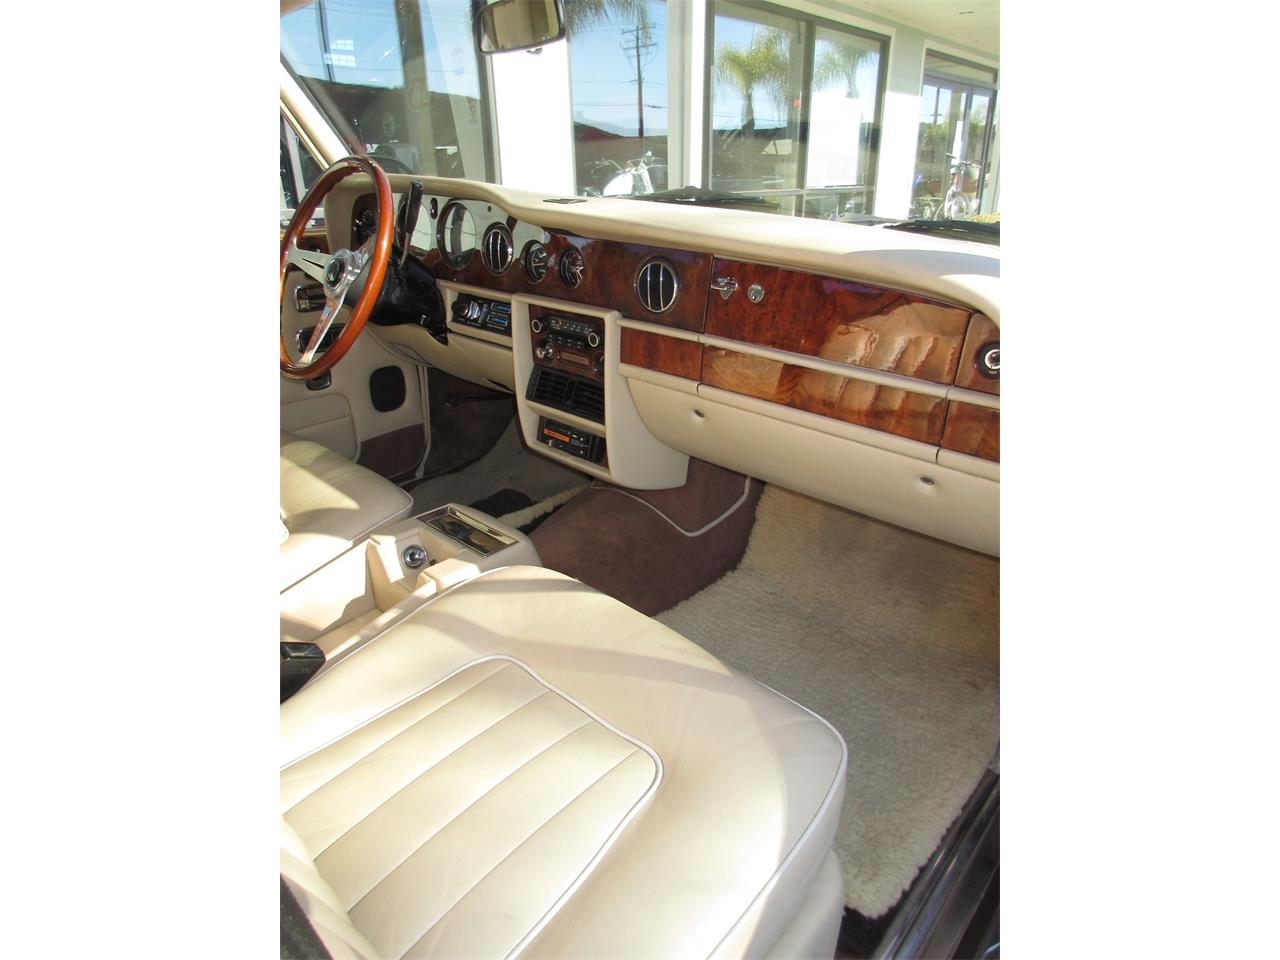 1978 Rolls-Royce Silver Cloud II for sale in Redlands, CA – photo 20